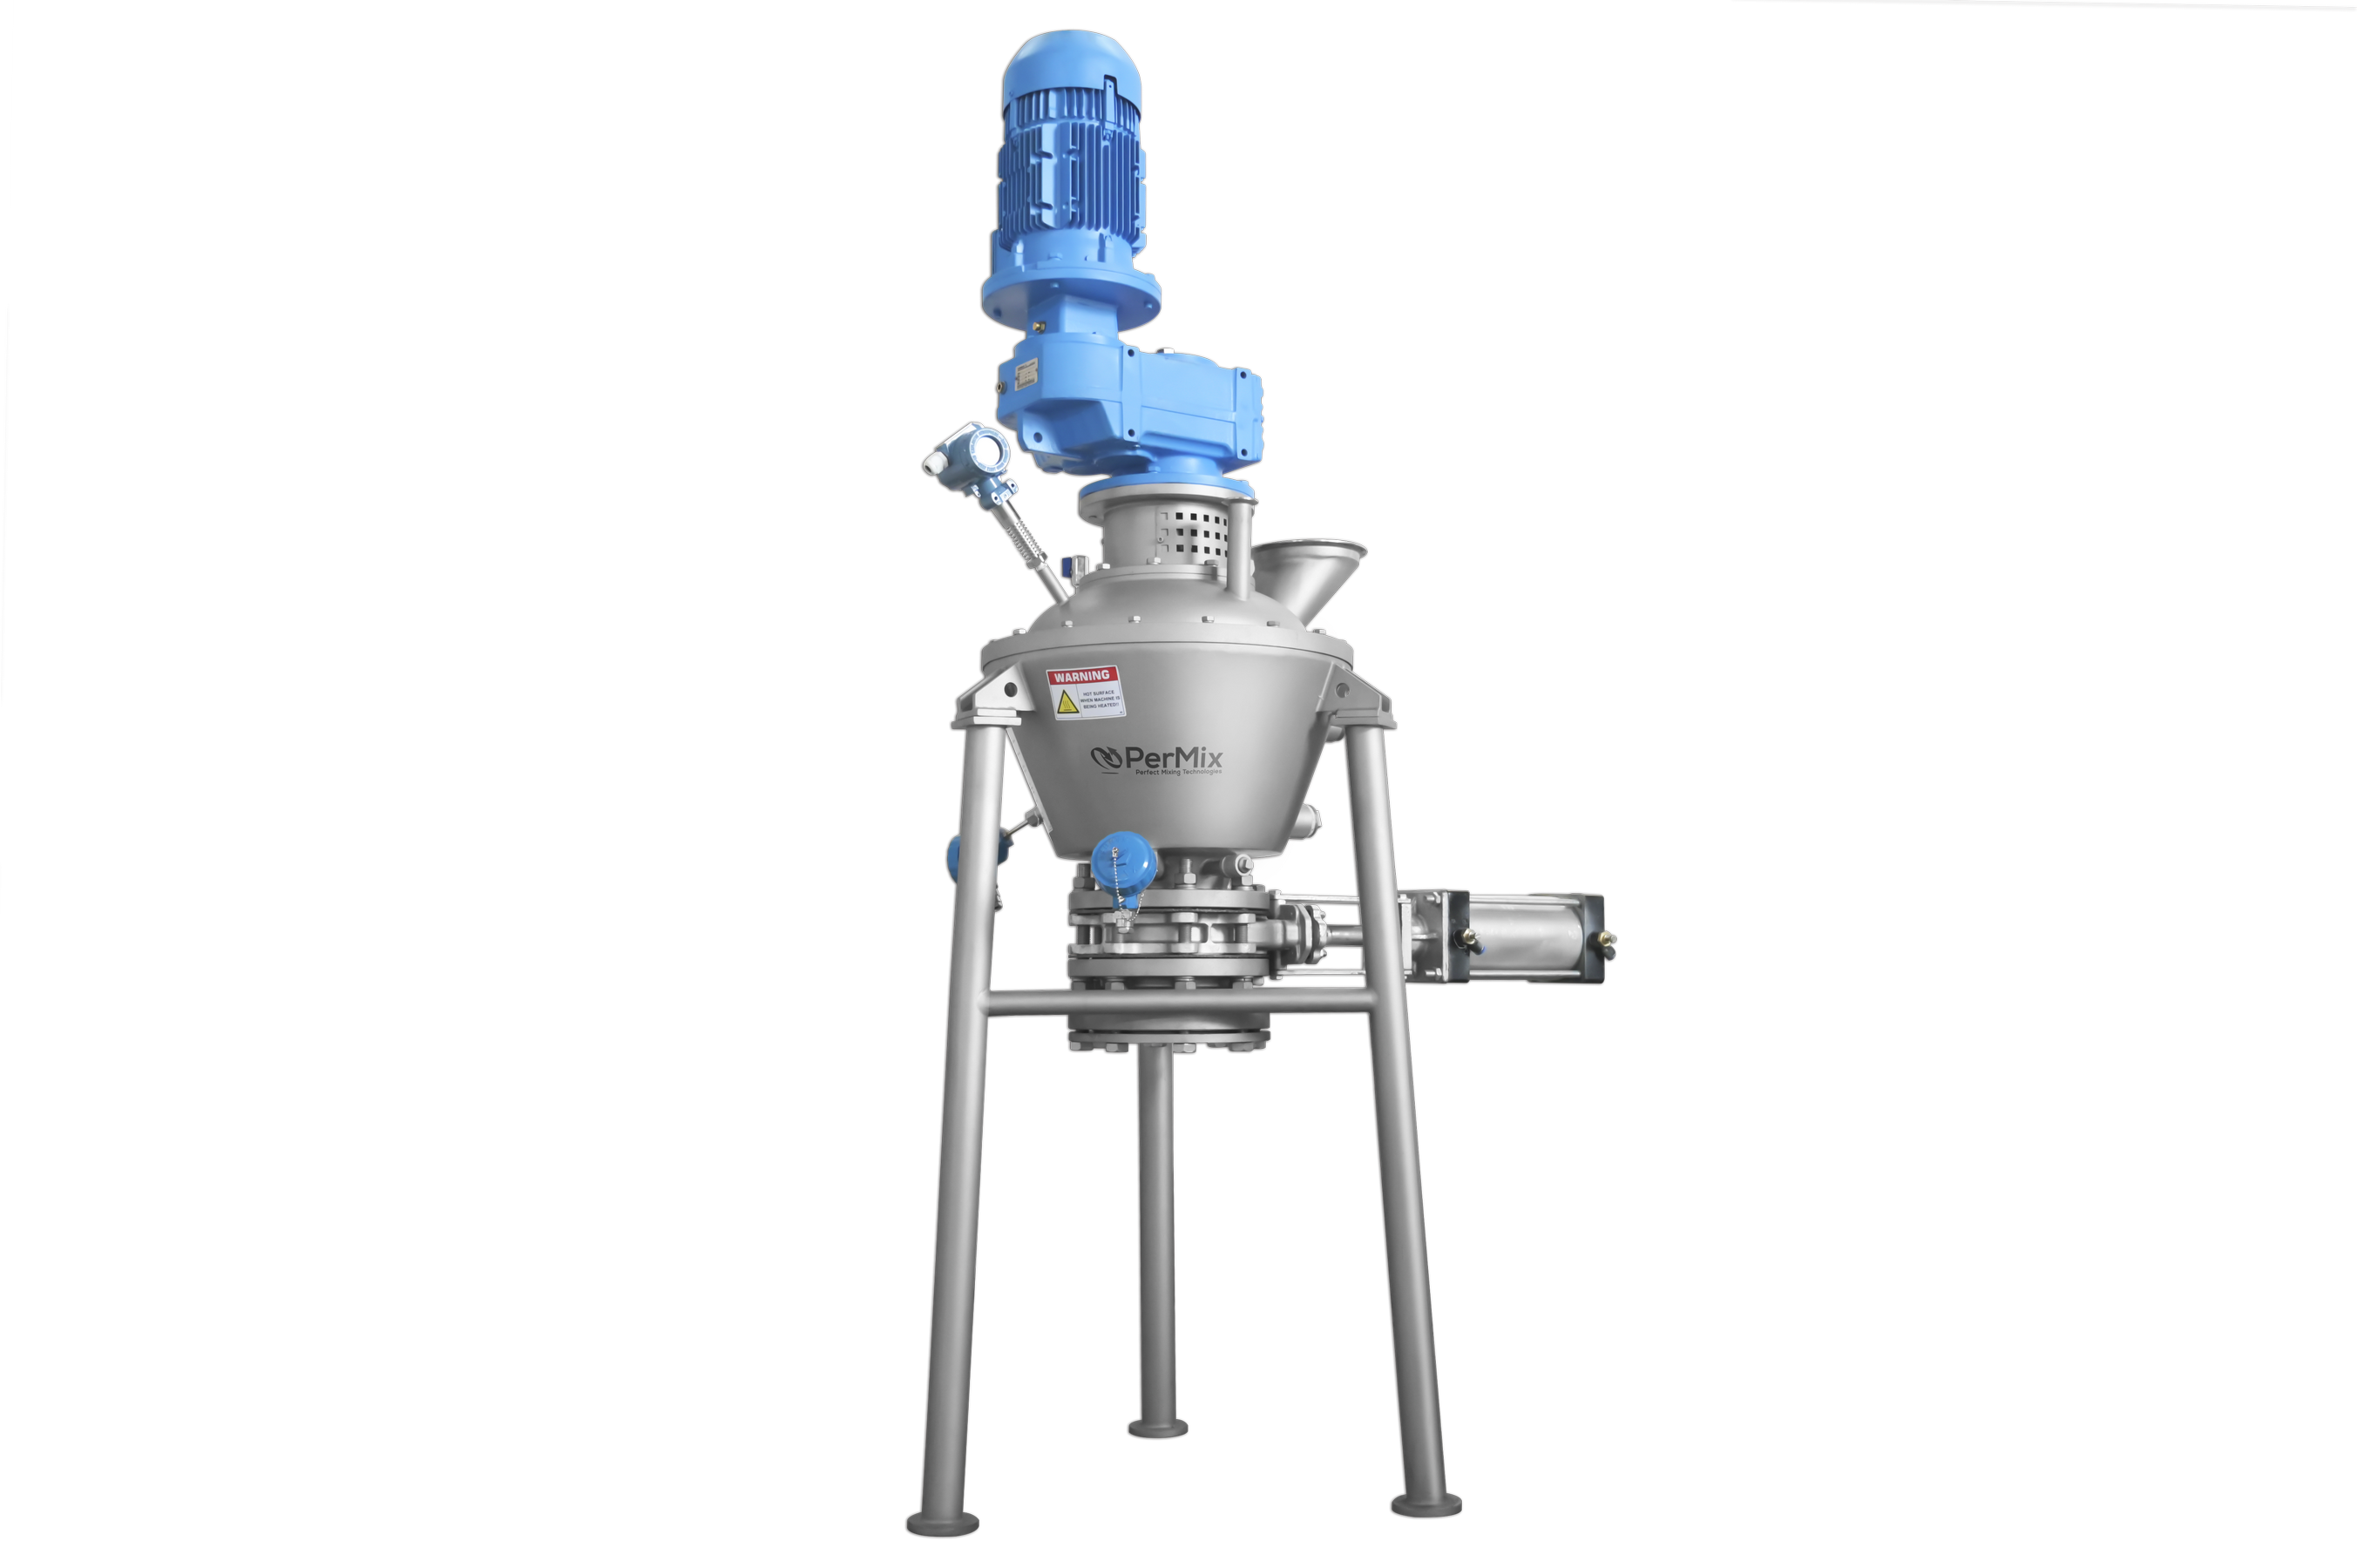 PerMix Vertical Vacuum Ribbon Mixers & Dryers Answer The Need For High-Temperature Mixing In Hazardous Areas